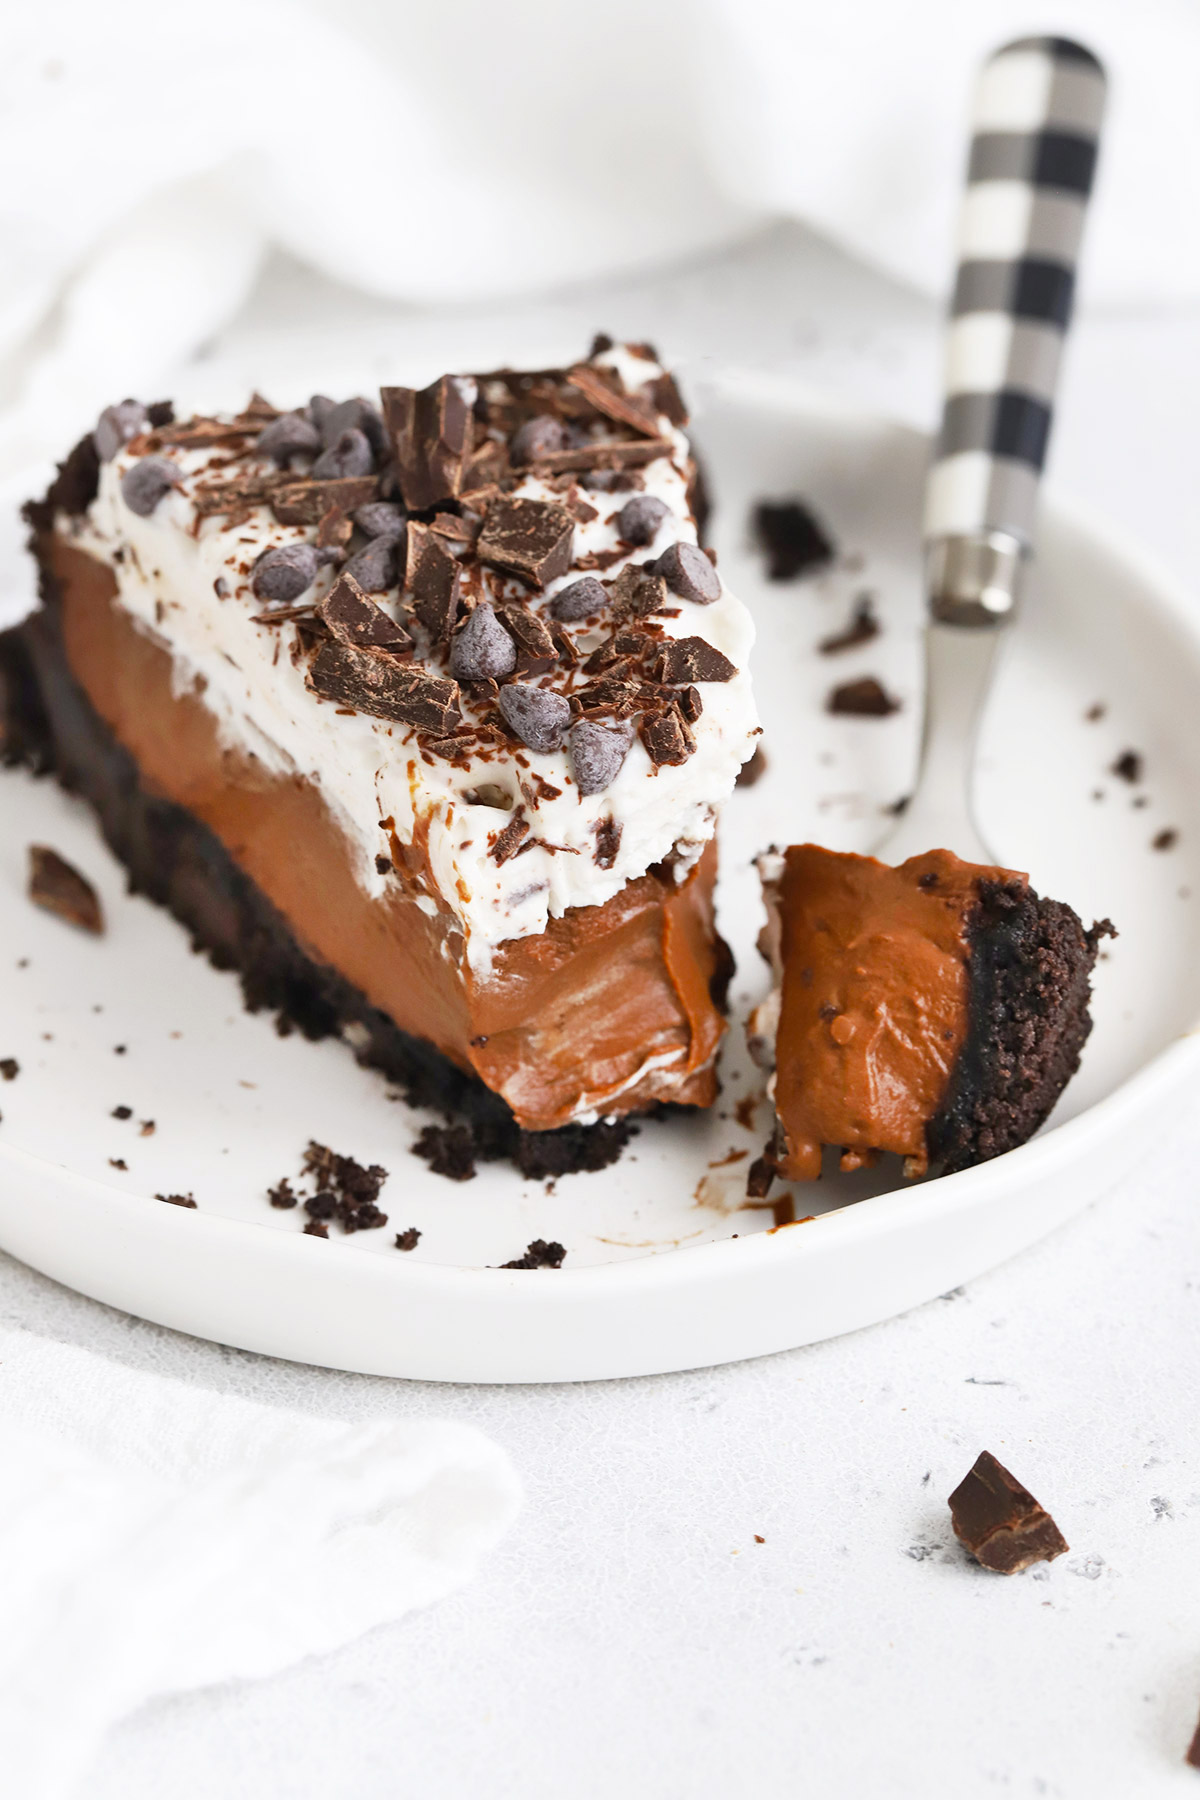 A slice of dairy-free vegan chocolate cream pie with chocolate cookie crust on a white plate with a white background